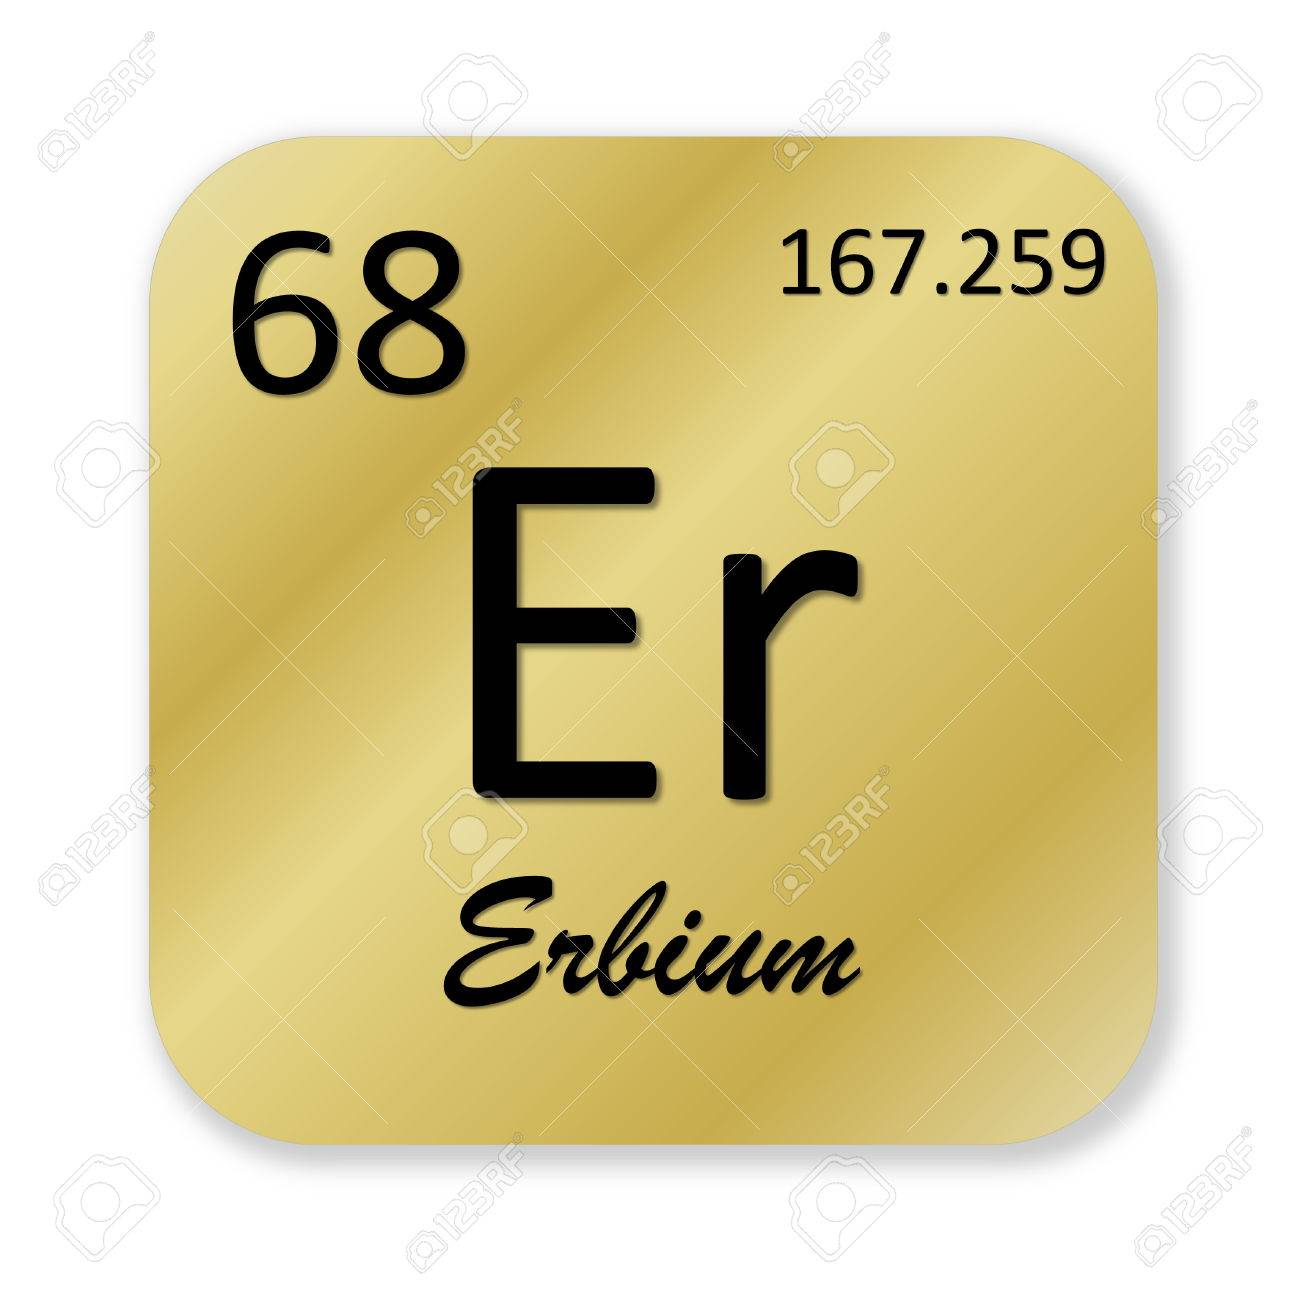 Er element periodic table images periodic table images erbium er element periodic table maytag quiet series 300 control erbium stock photos pictures royalty free gamestrikefo Image collections